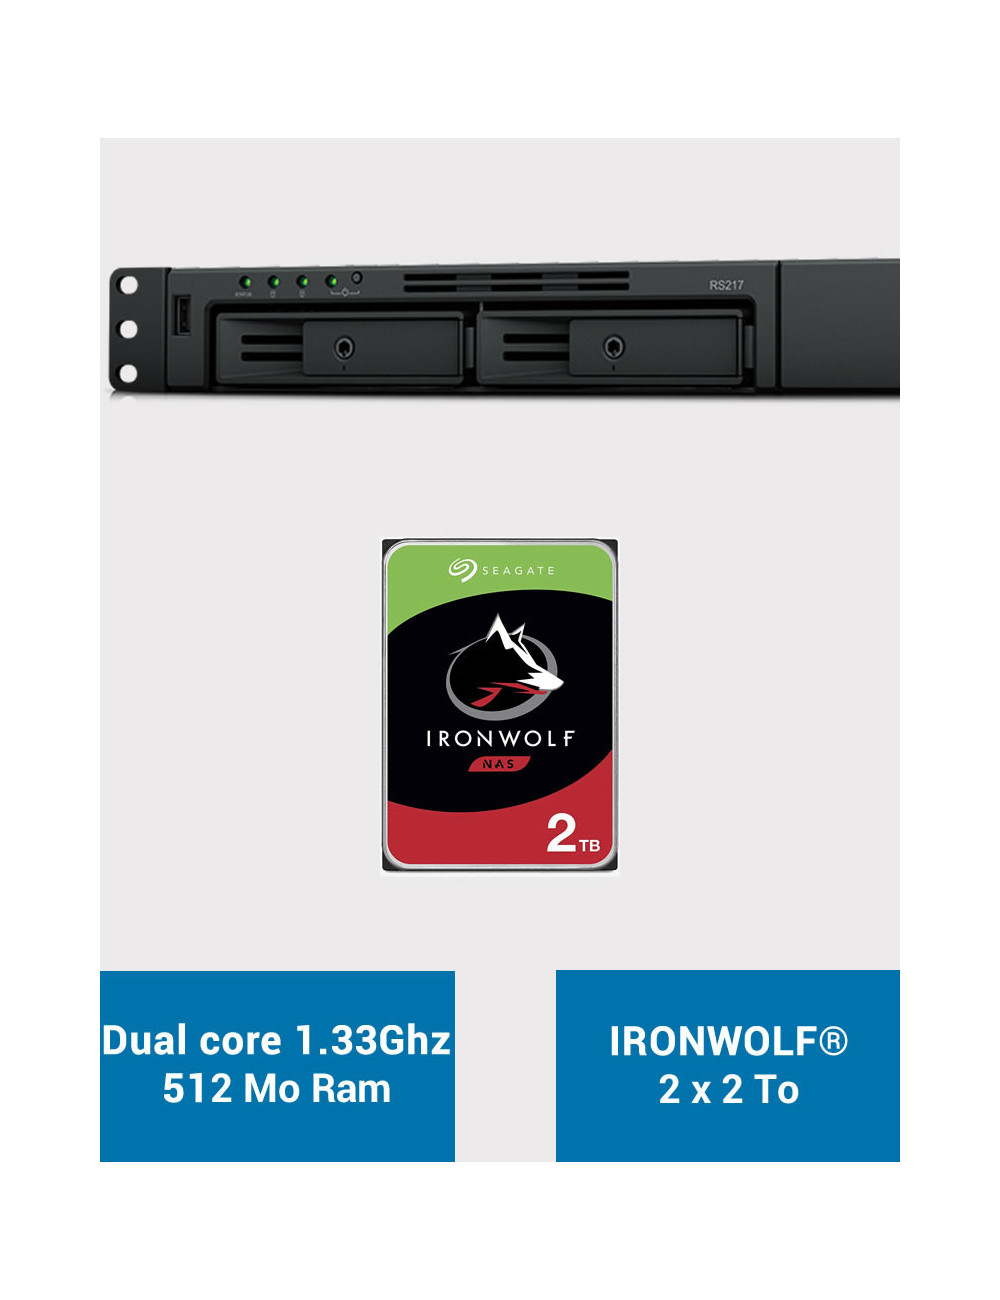 Synology RS217 Serveur NAS IRONWOLF 4To (2x2To)